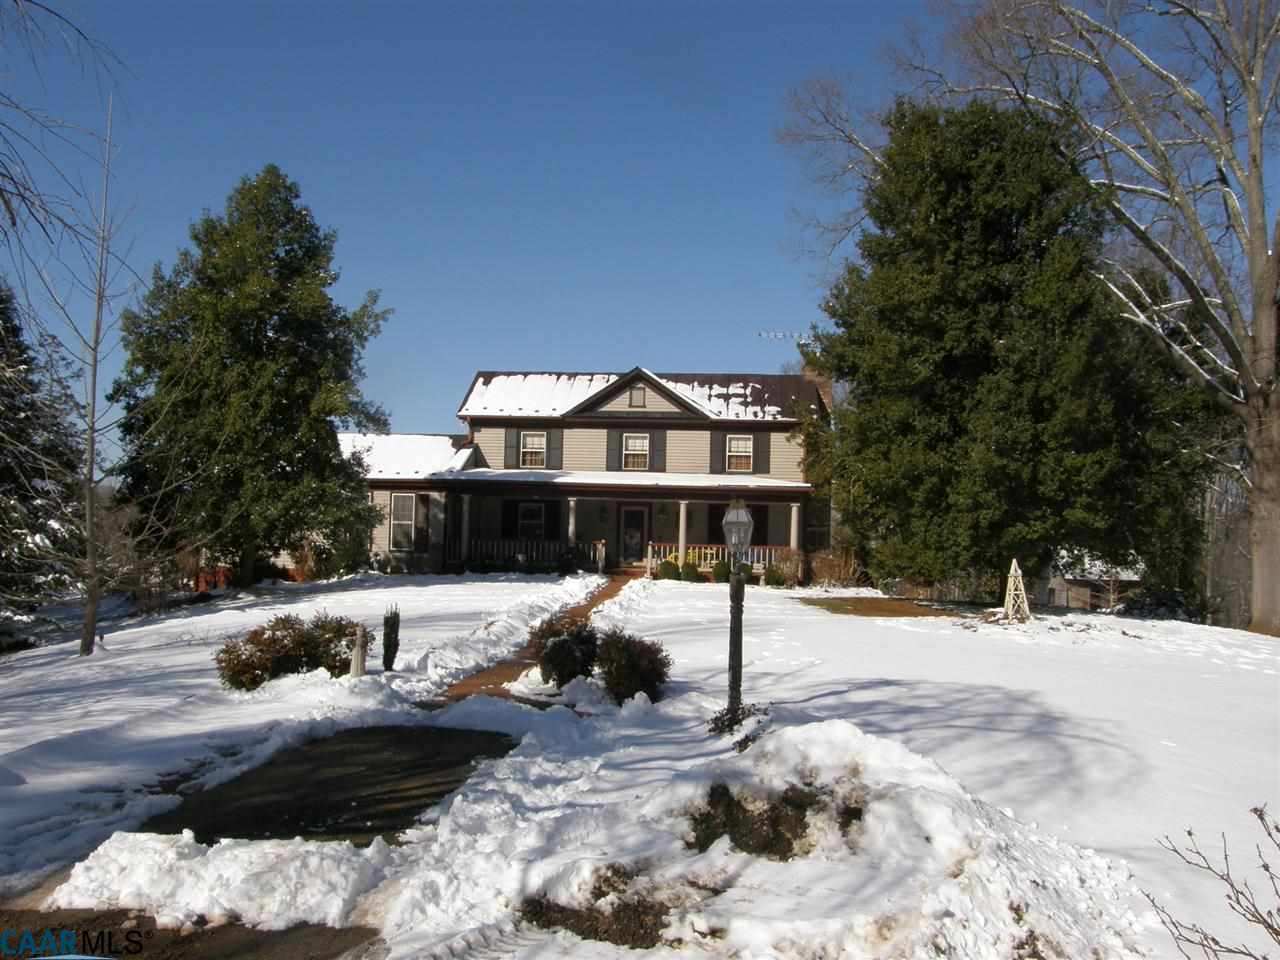 home for sale , MLS #528993, 9290 Old Green Mountain Rd